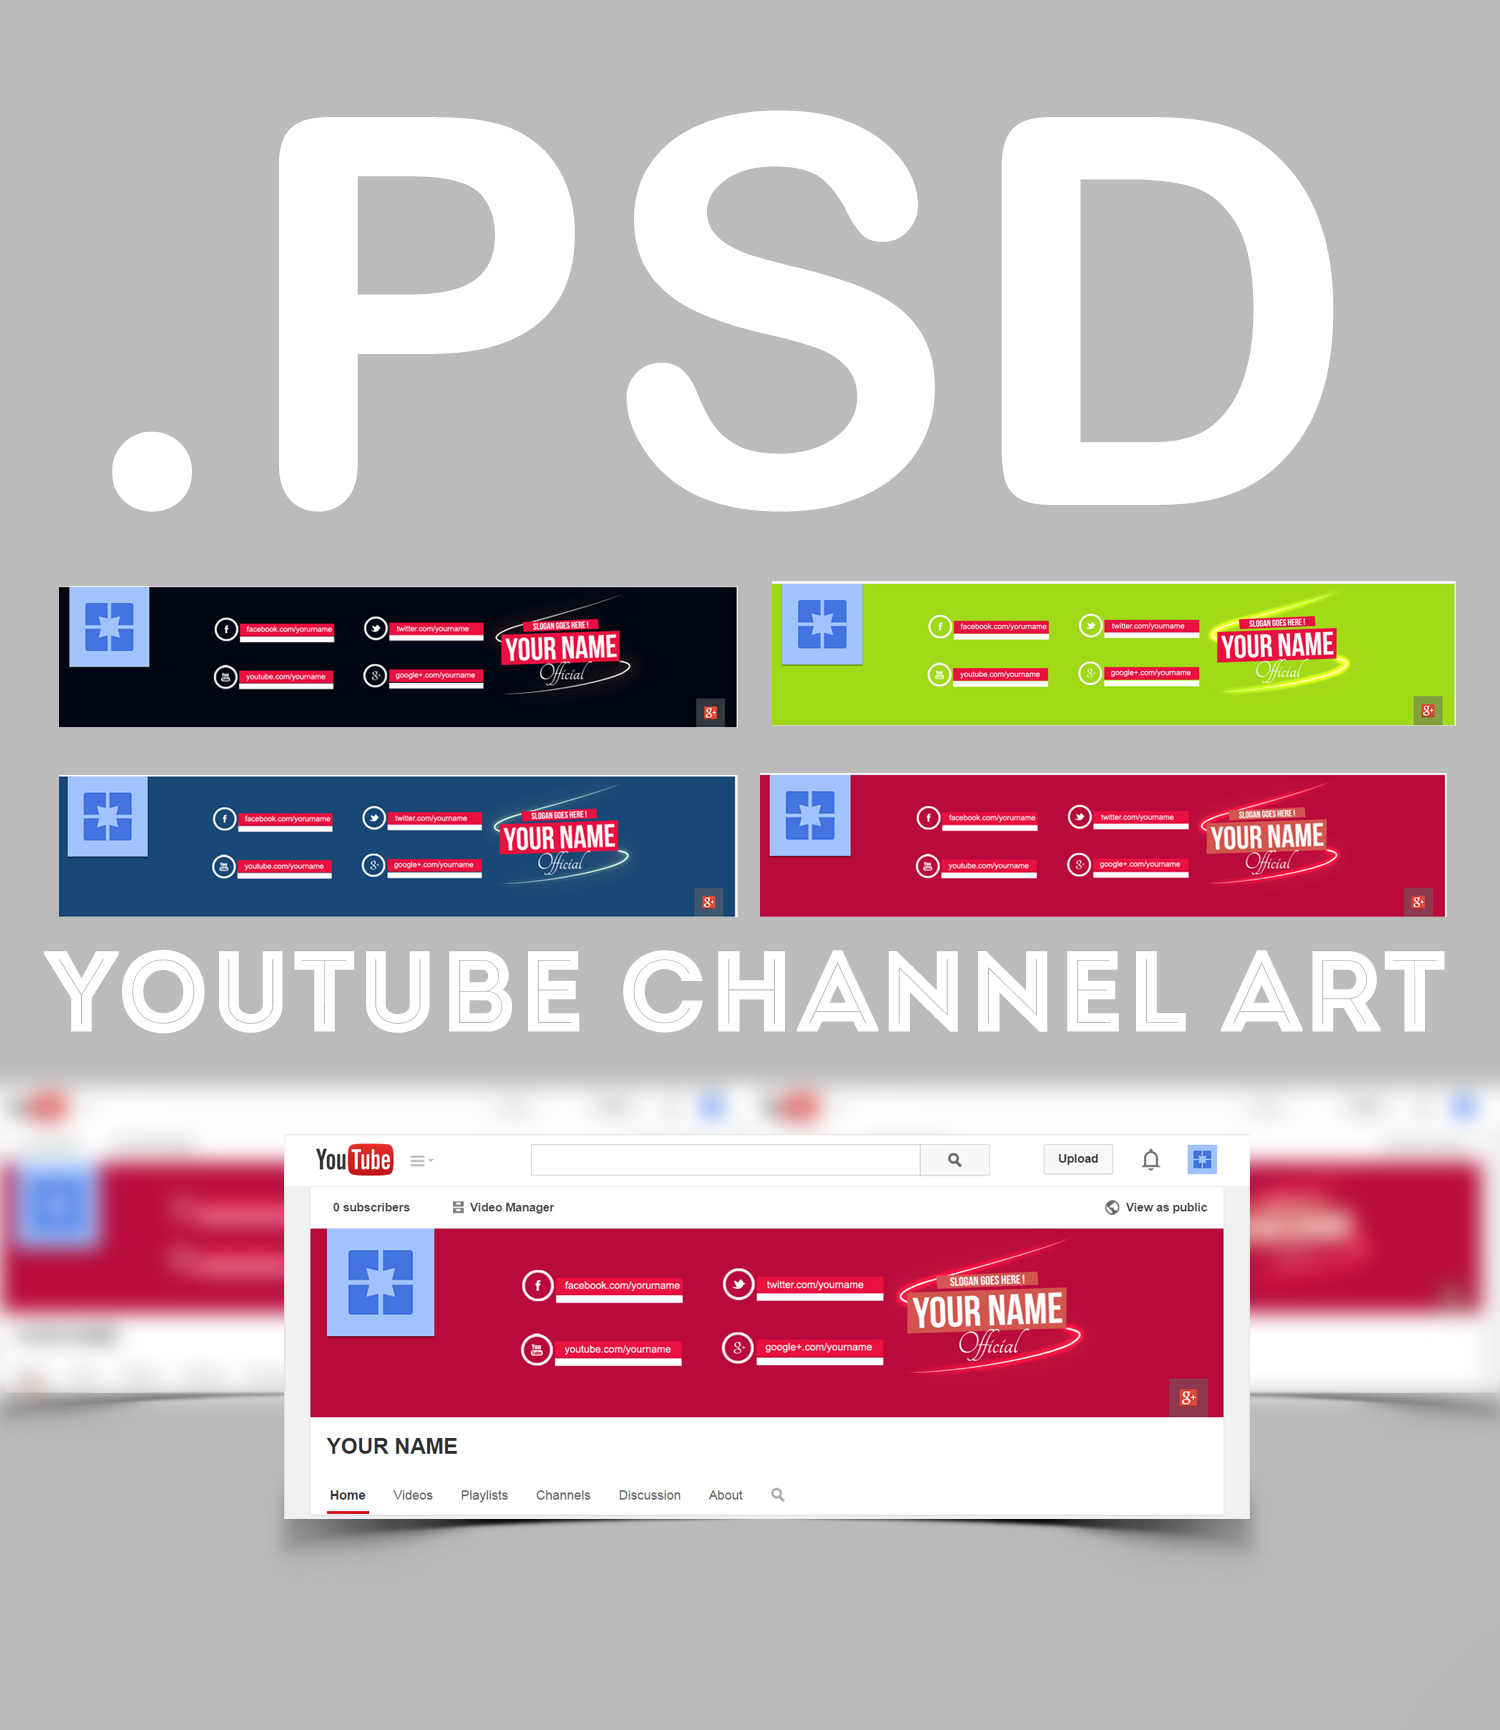 youtube channel art  PSD by AlbaniaGraphicDesign on DeviantArt